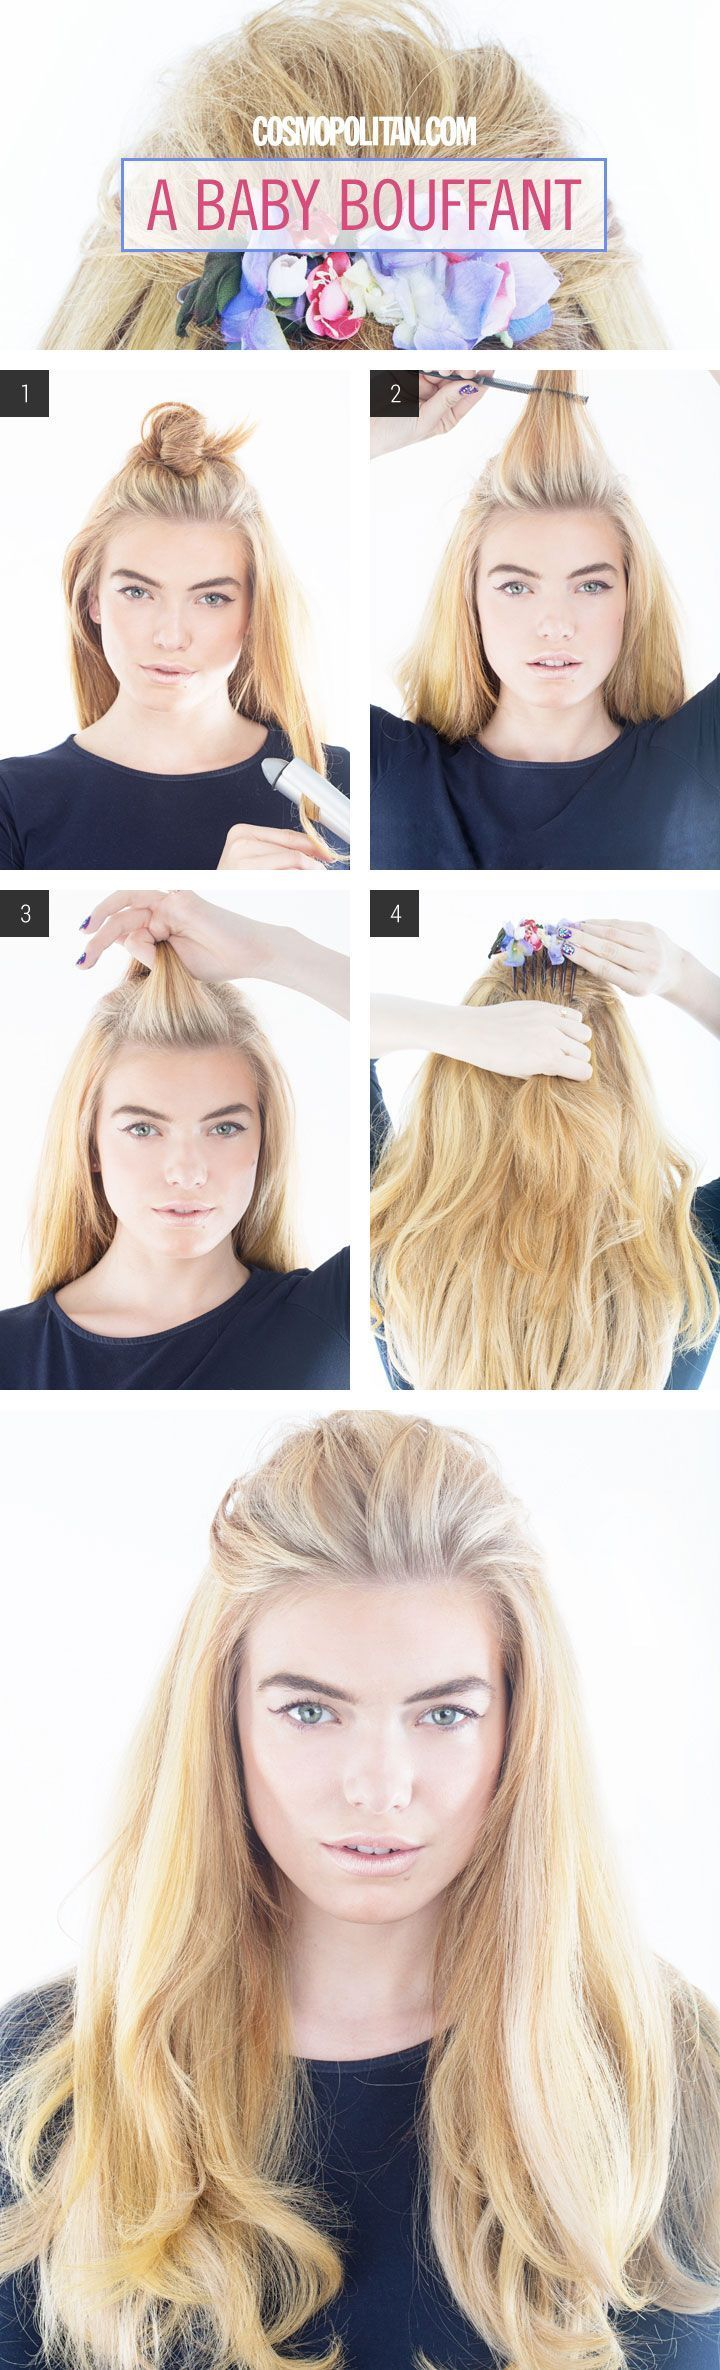 601 best bouffant hair hairstyles images on pinterest | beautiful